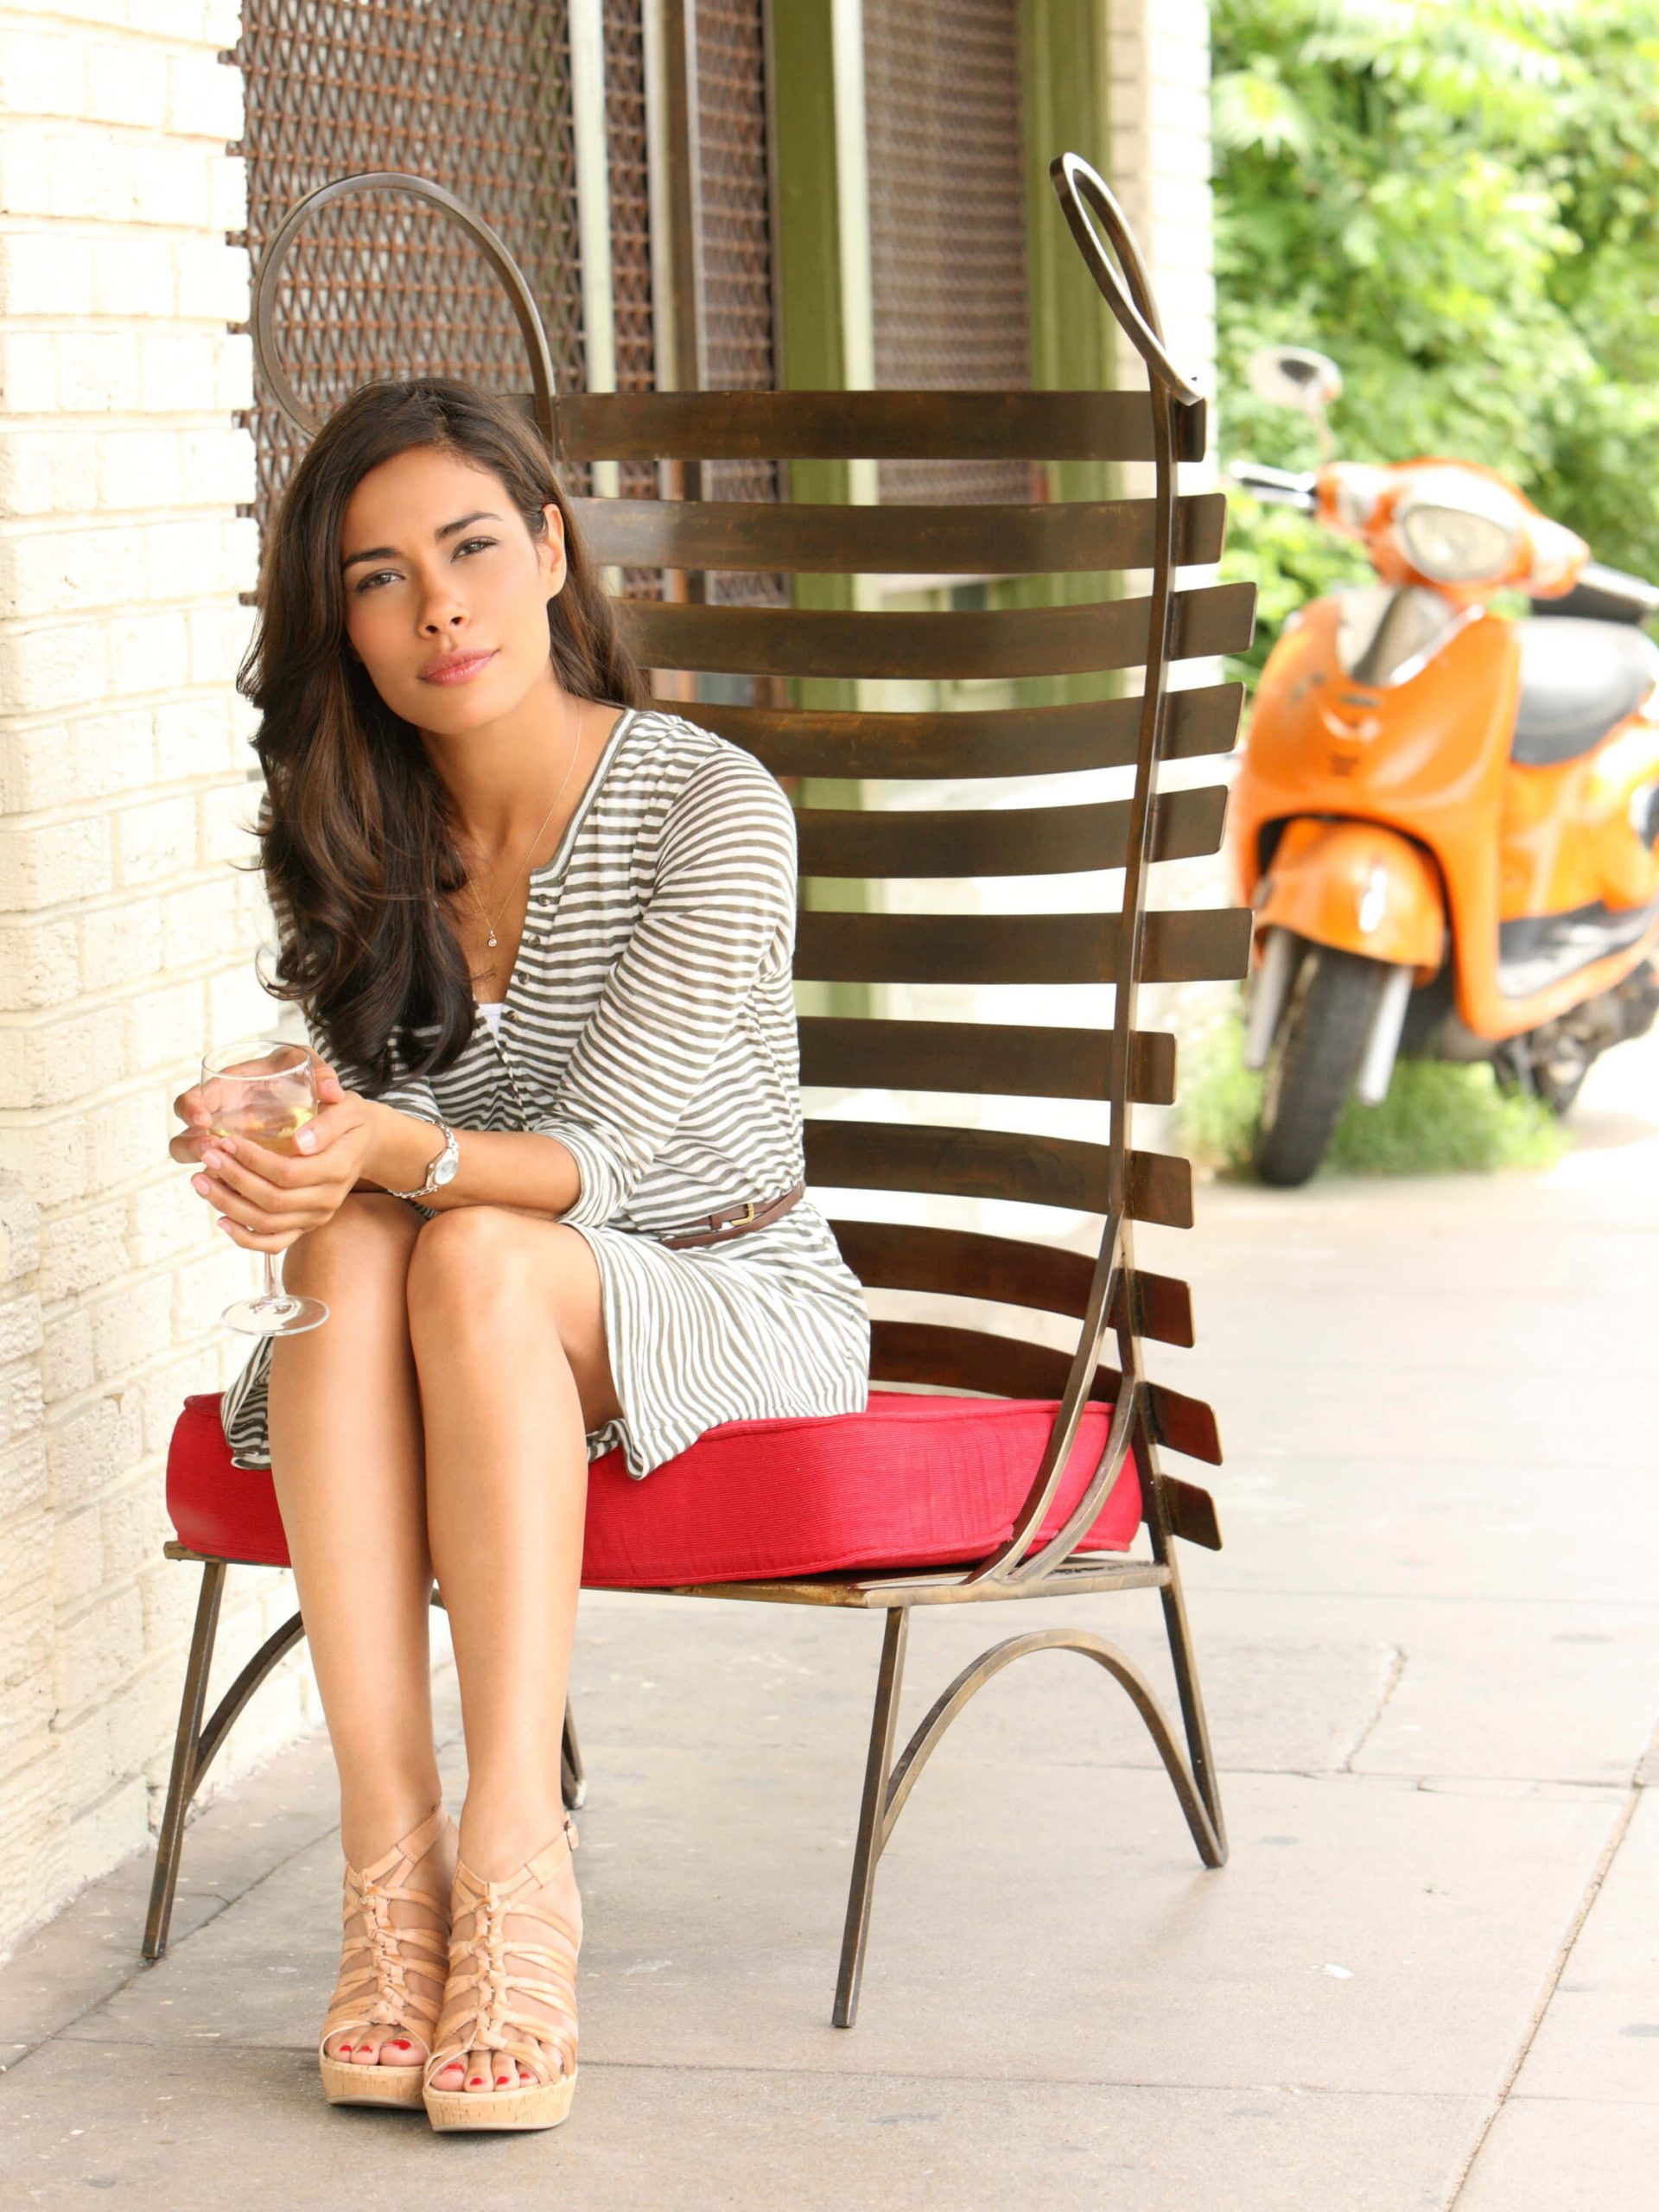 61 Sexy Daniella Alonso Pictures Will Speed up A Gigantic